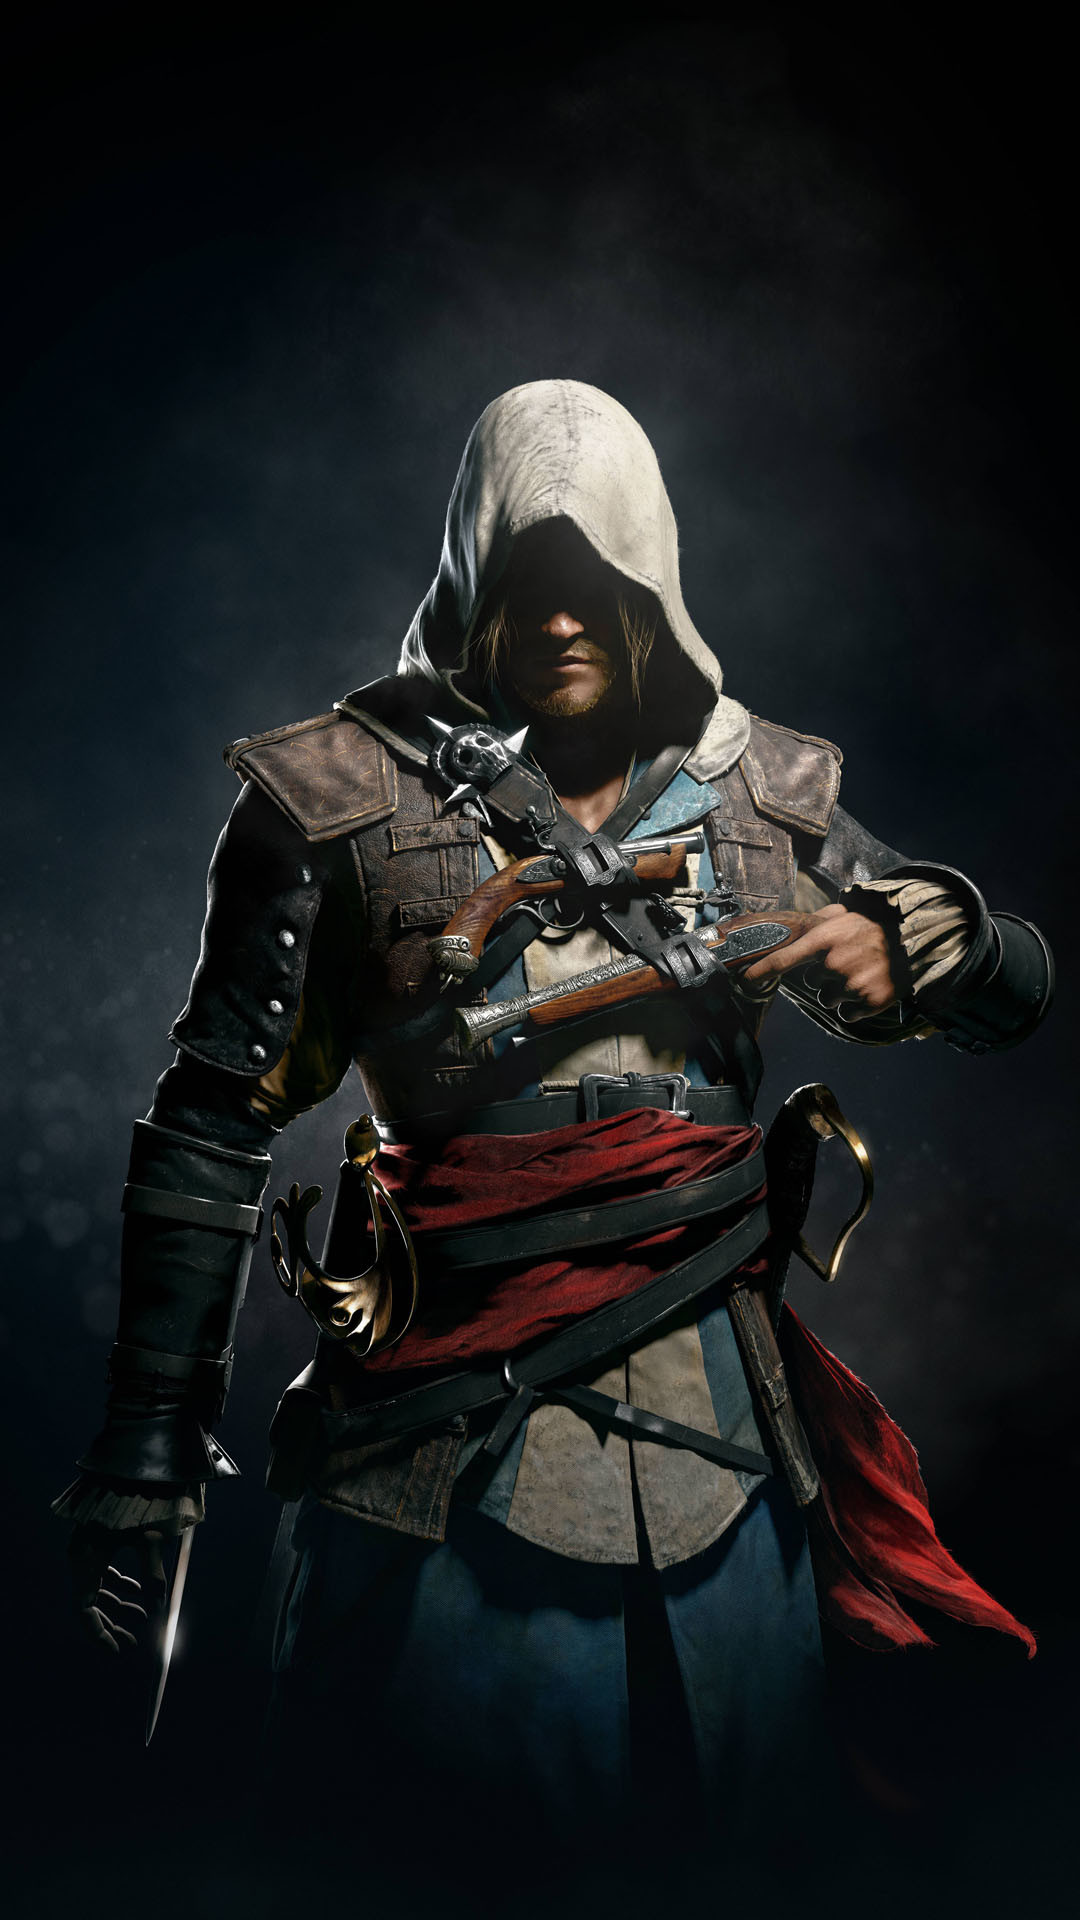 1080x1920 Assassins Creed 4 HTC hd wallpaper